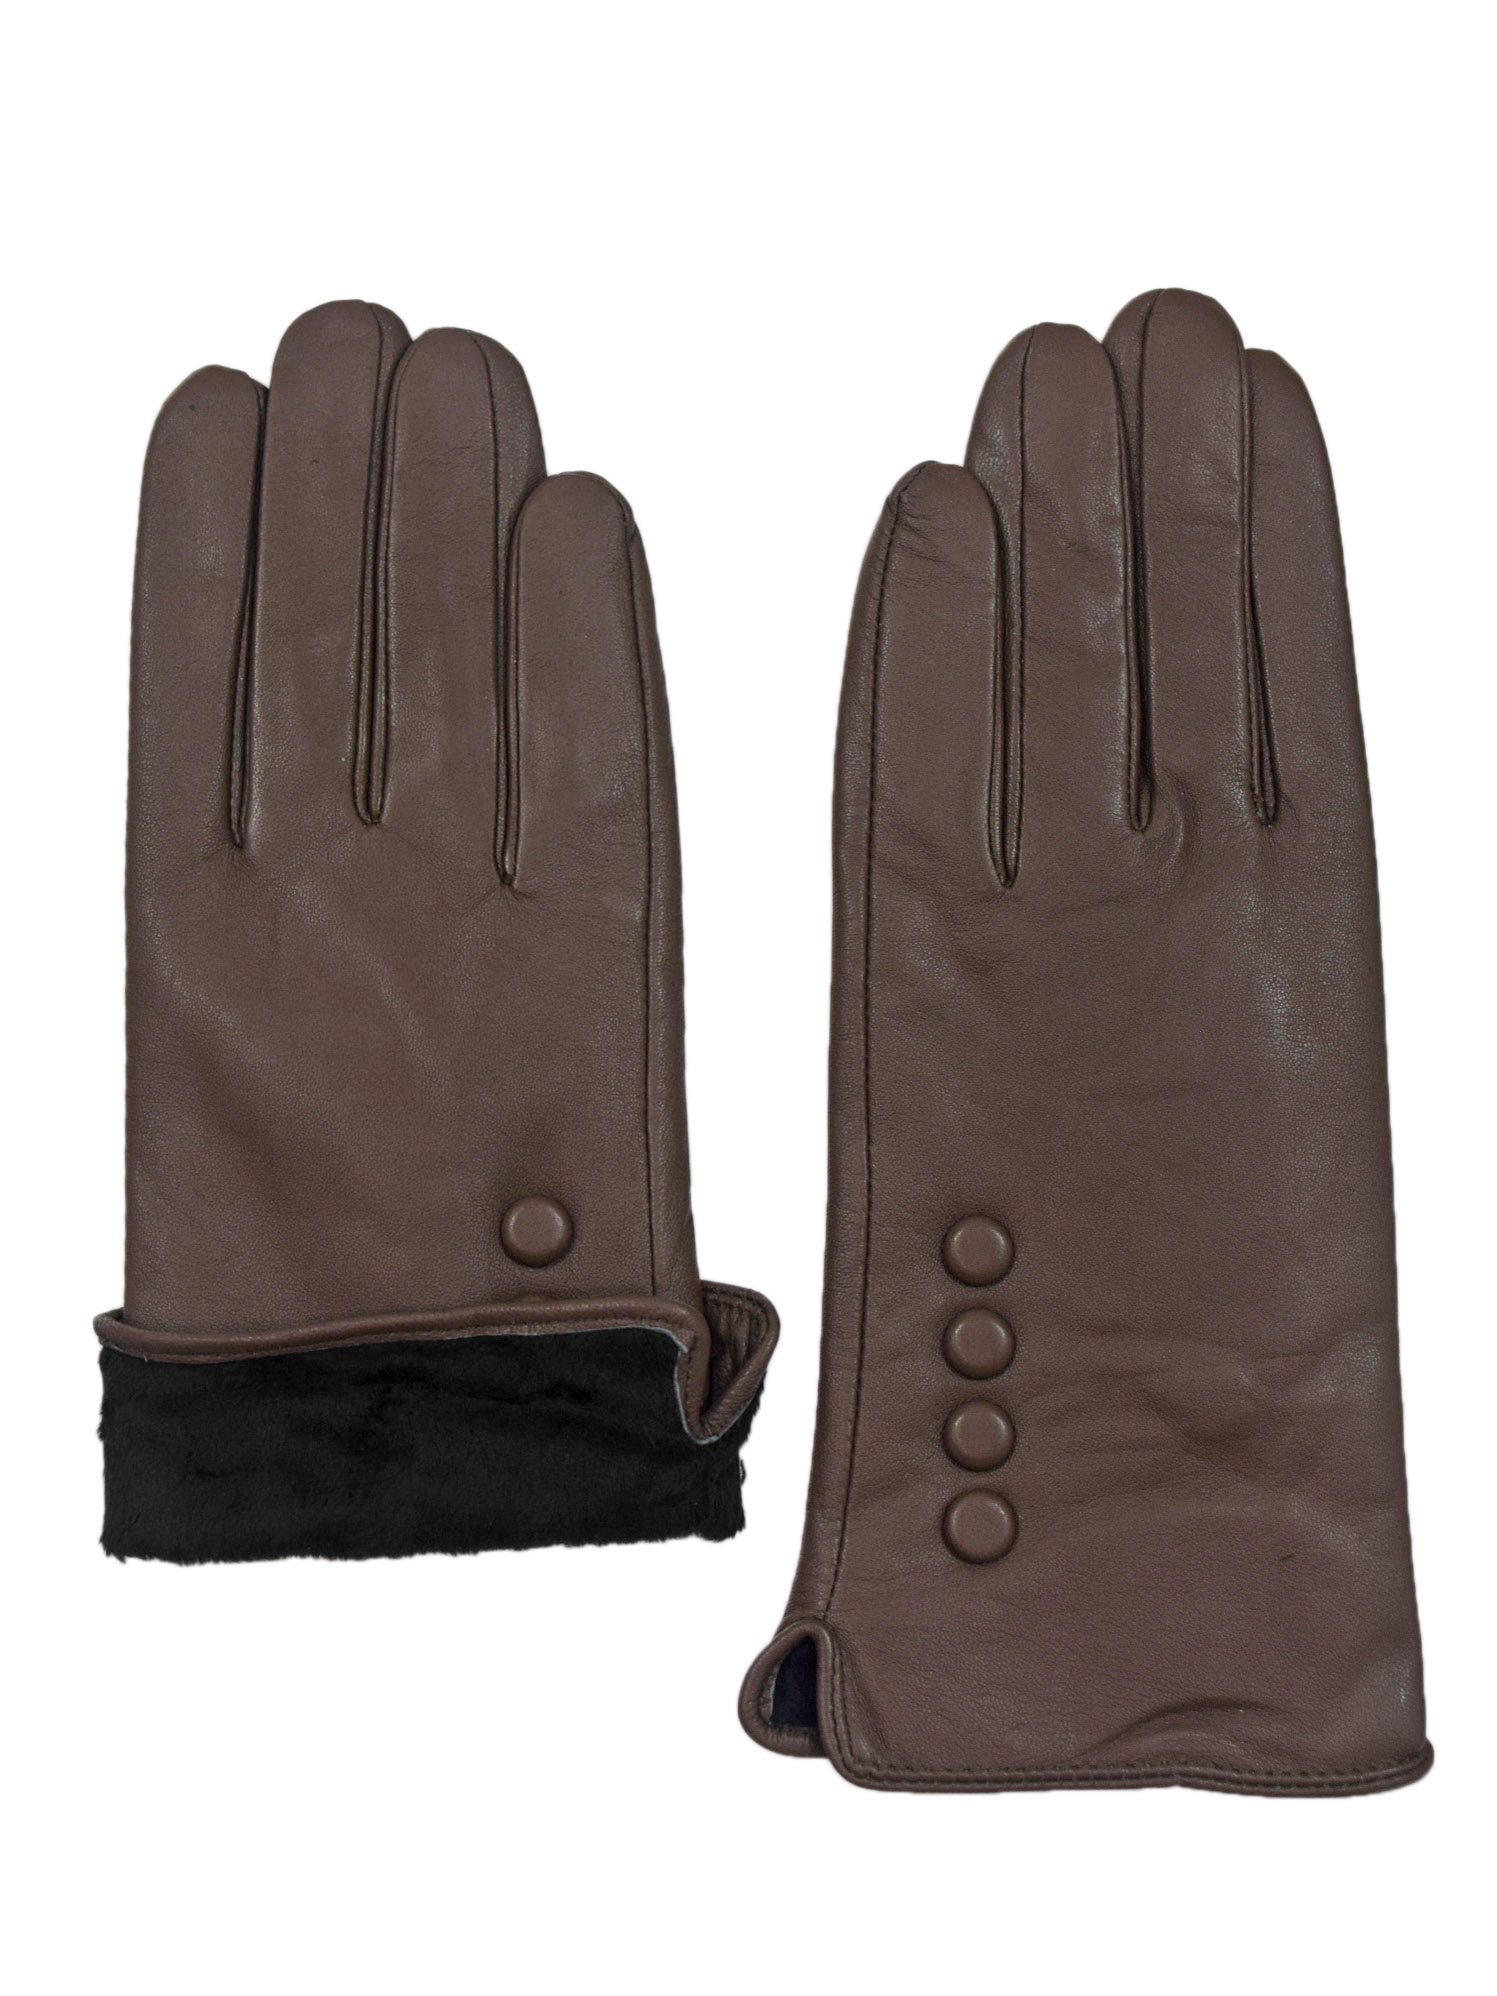 Giromy-Samoni-Womens-Warm-Winter-Plush-Lined-Leather-Driving-Gloves-Taupe thumbnail 6